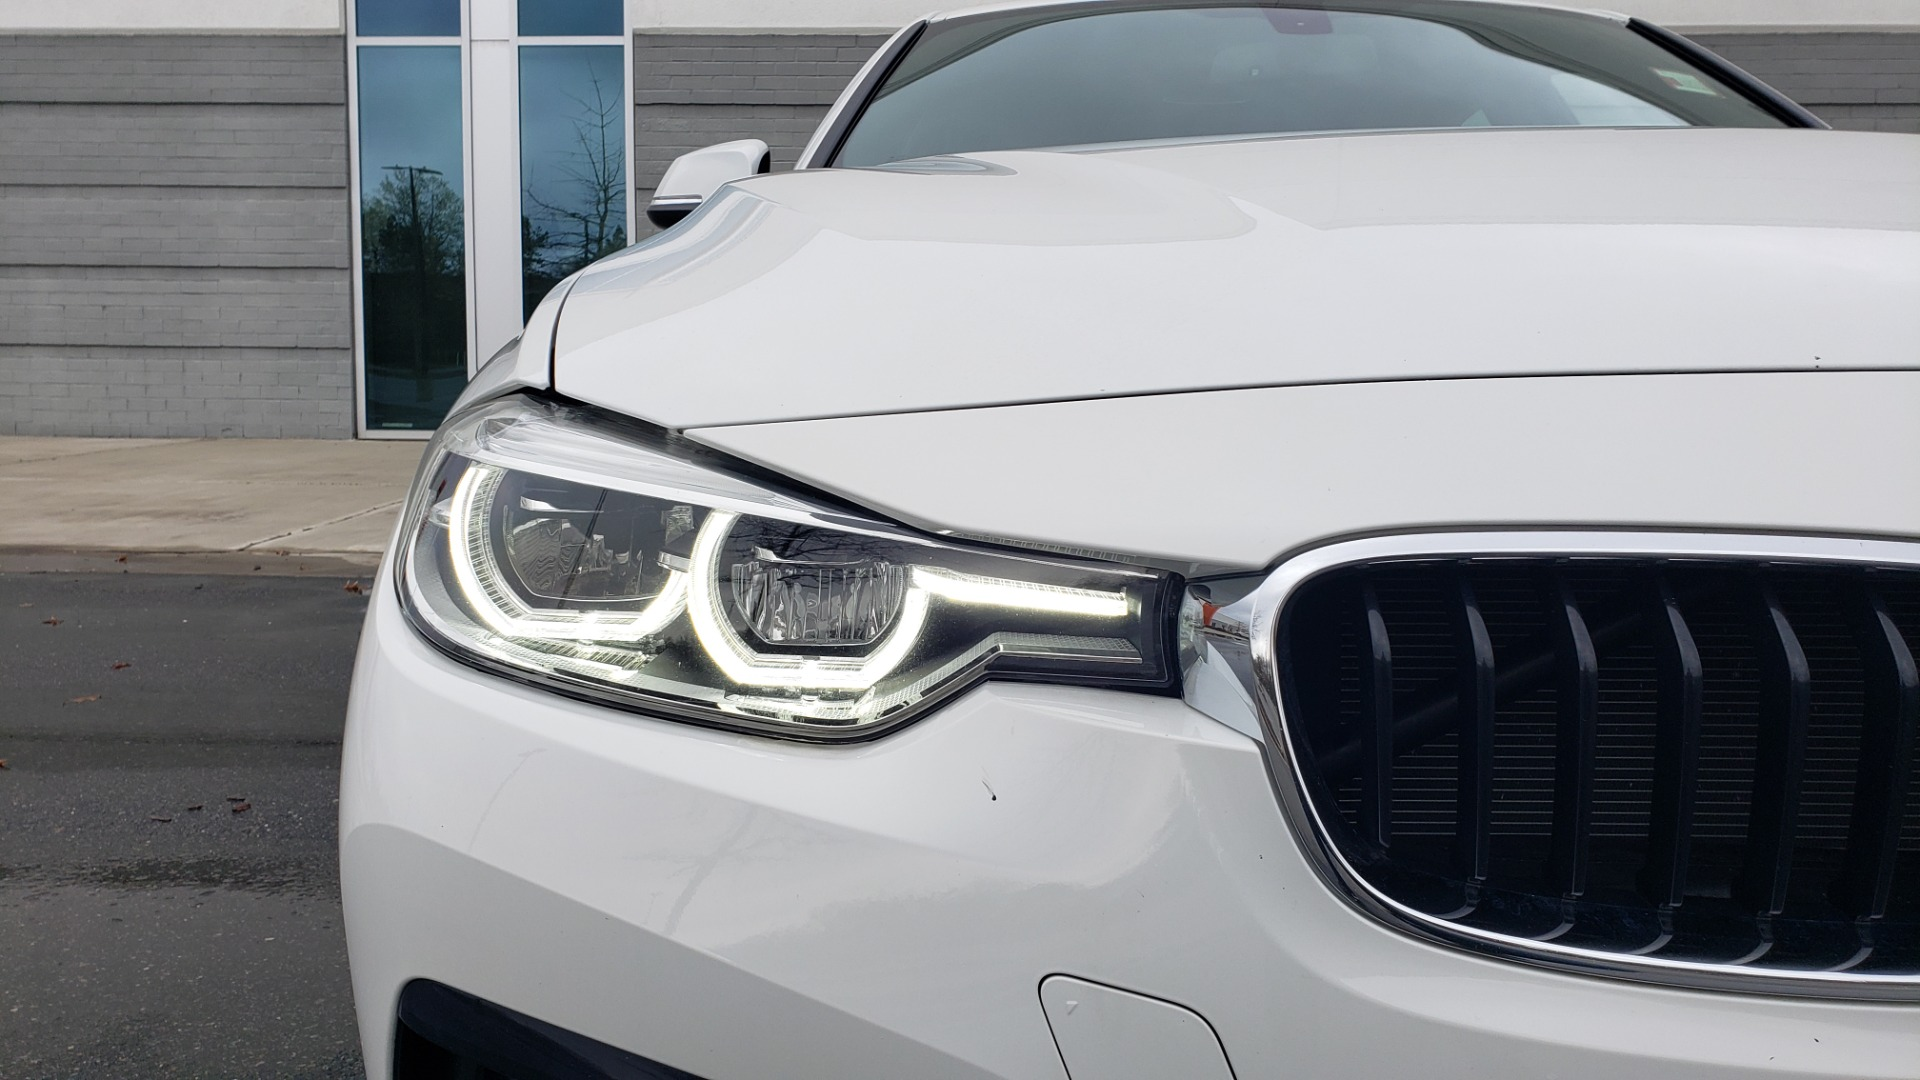 Used 2018 BMW 3 SERIES 330I XDRIVE / CONV PKG / SUNROOF / HTD STS / REARVIEW for sale $24,795 at Formula Imports in Charlotte NC 28227 23